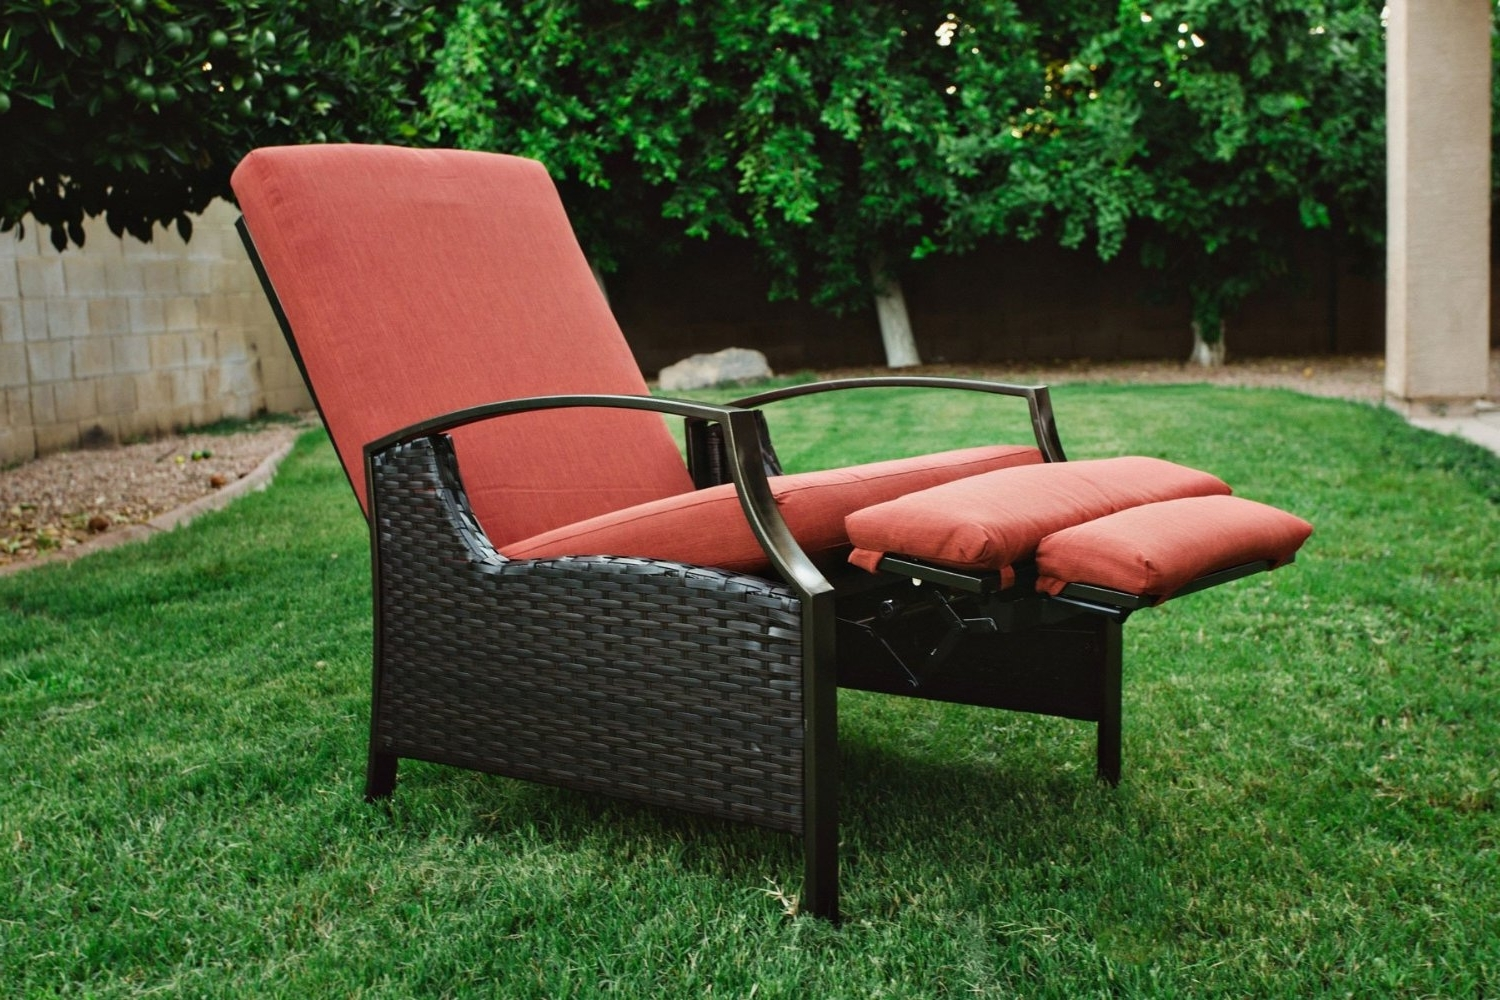 Chaise Lounge Reclining Chairs For Outdoor Throughout 2018 Outdoor : Wayfair Chaise Lounge Chaise Lounge Sofa Most (View 5 of 15)